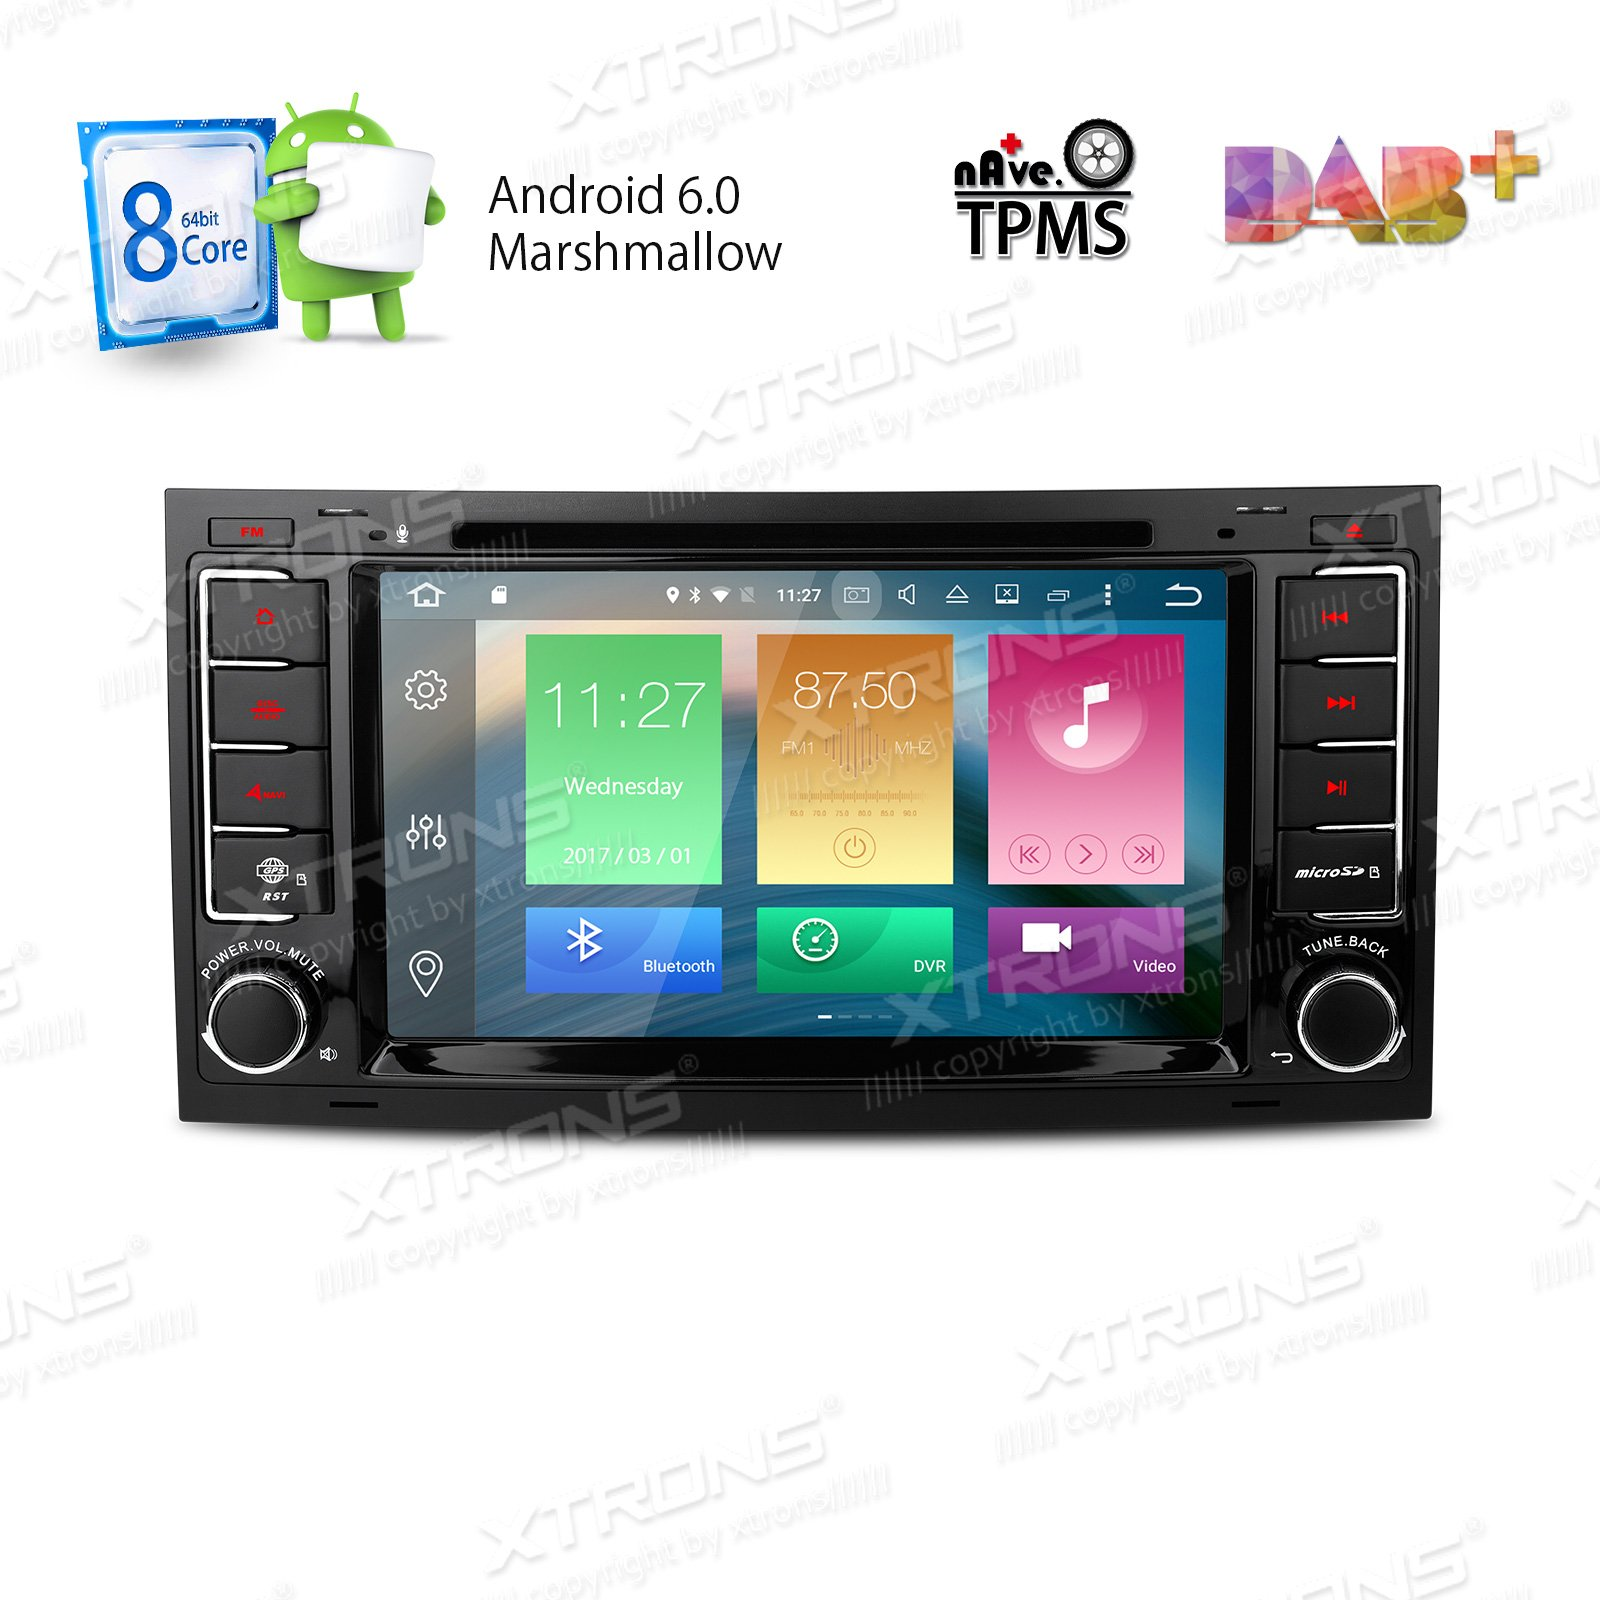 XTRONS Android 6.0 Octa-Core 64Bit 7 Inch Capacitive Touch Screen Car Stereo Radio DVD Player GPS CANbus Screen Mirroring Function OBD2 Tire Pressure Monitoring for Volkswagen VW Touareg 2004-2011